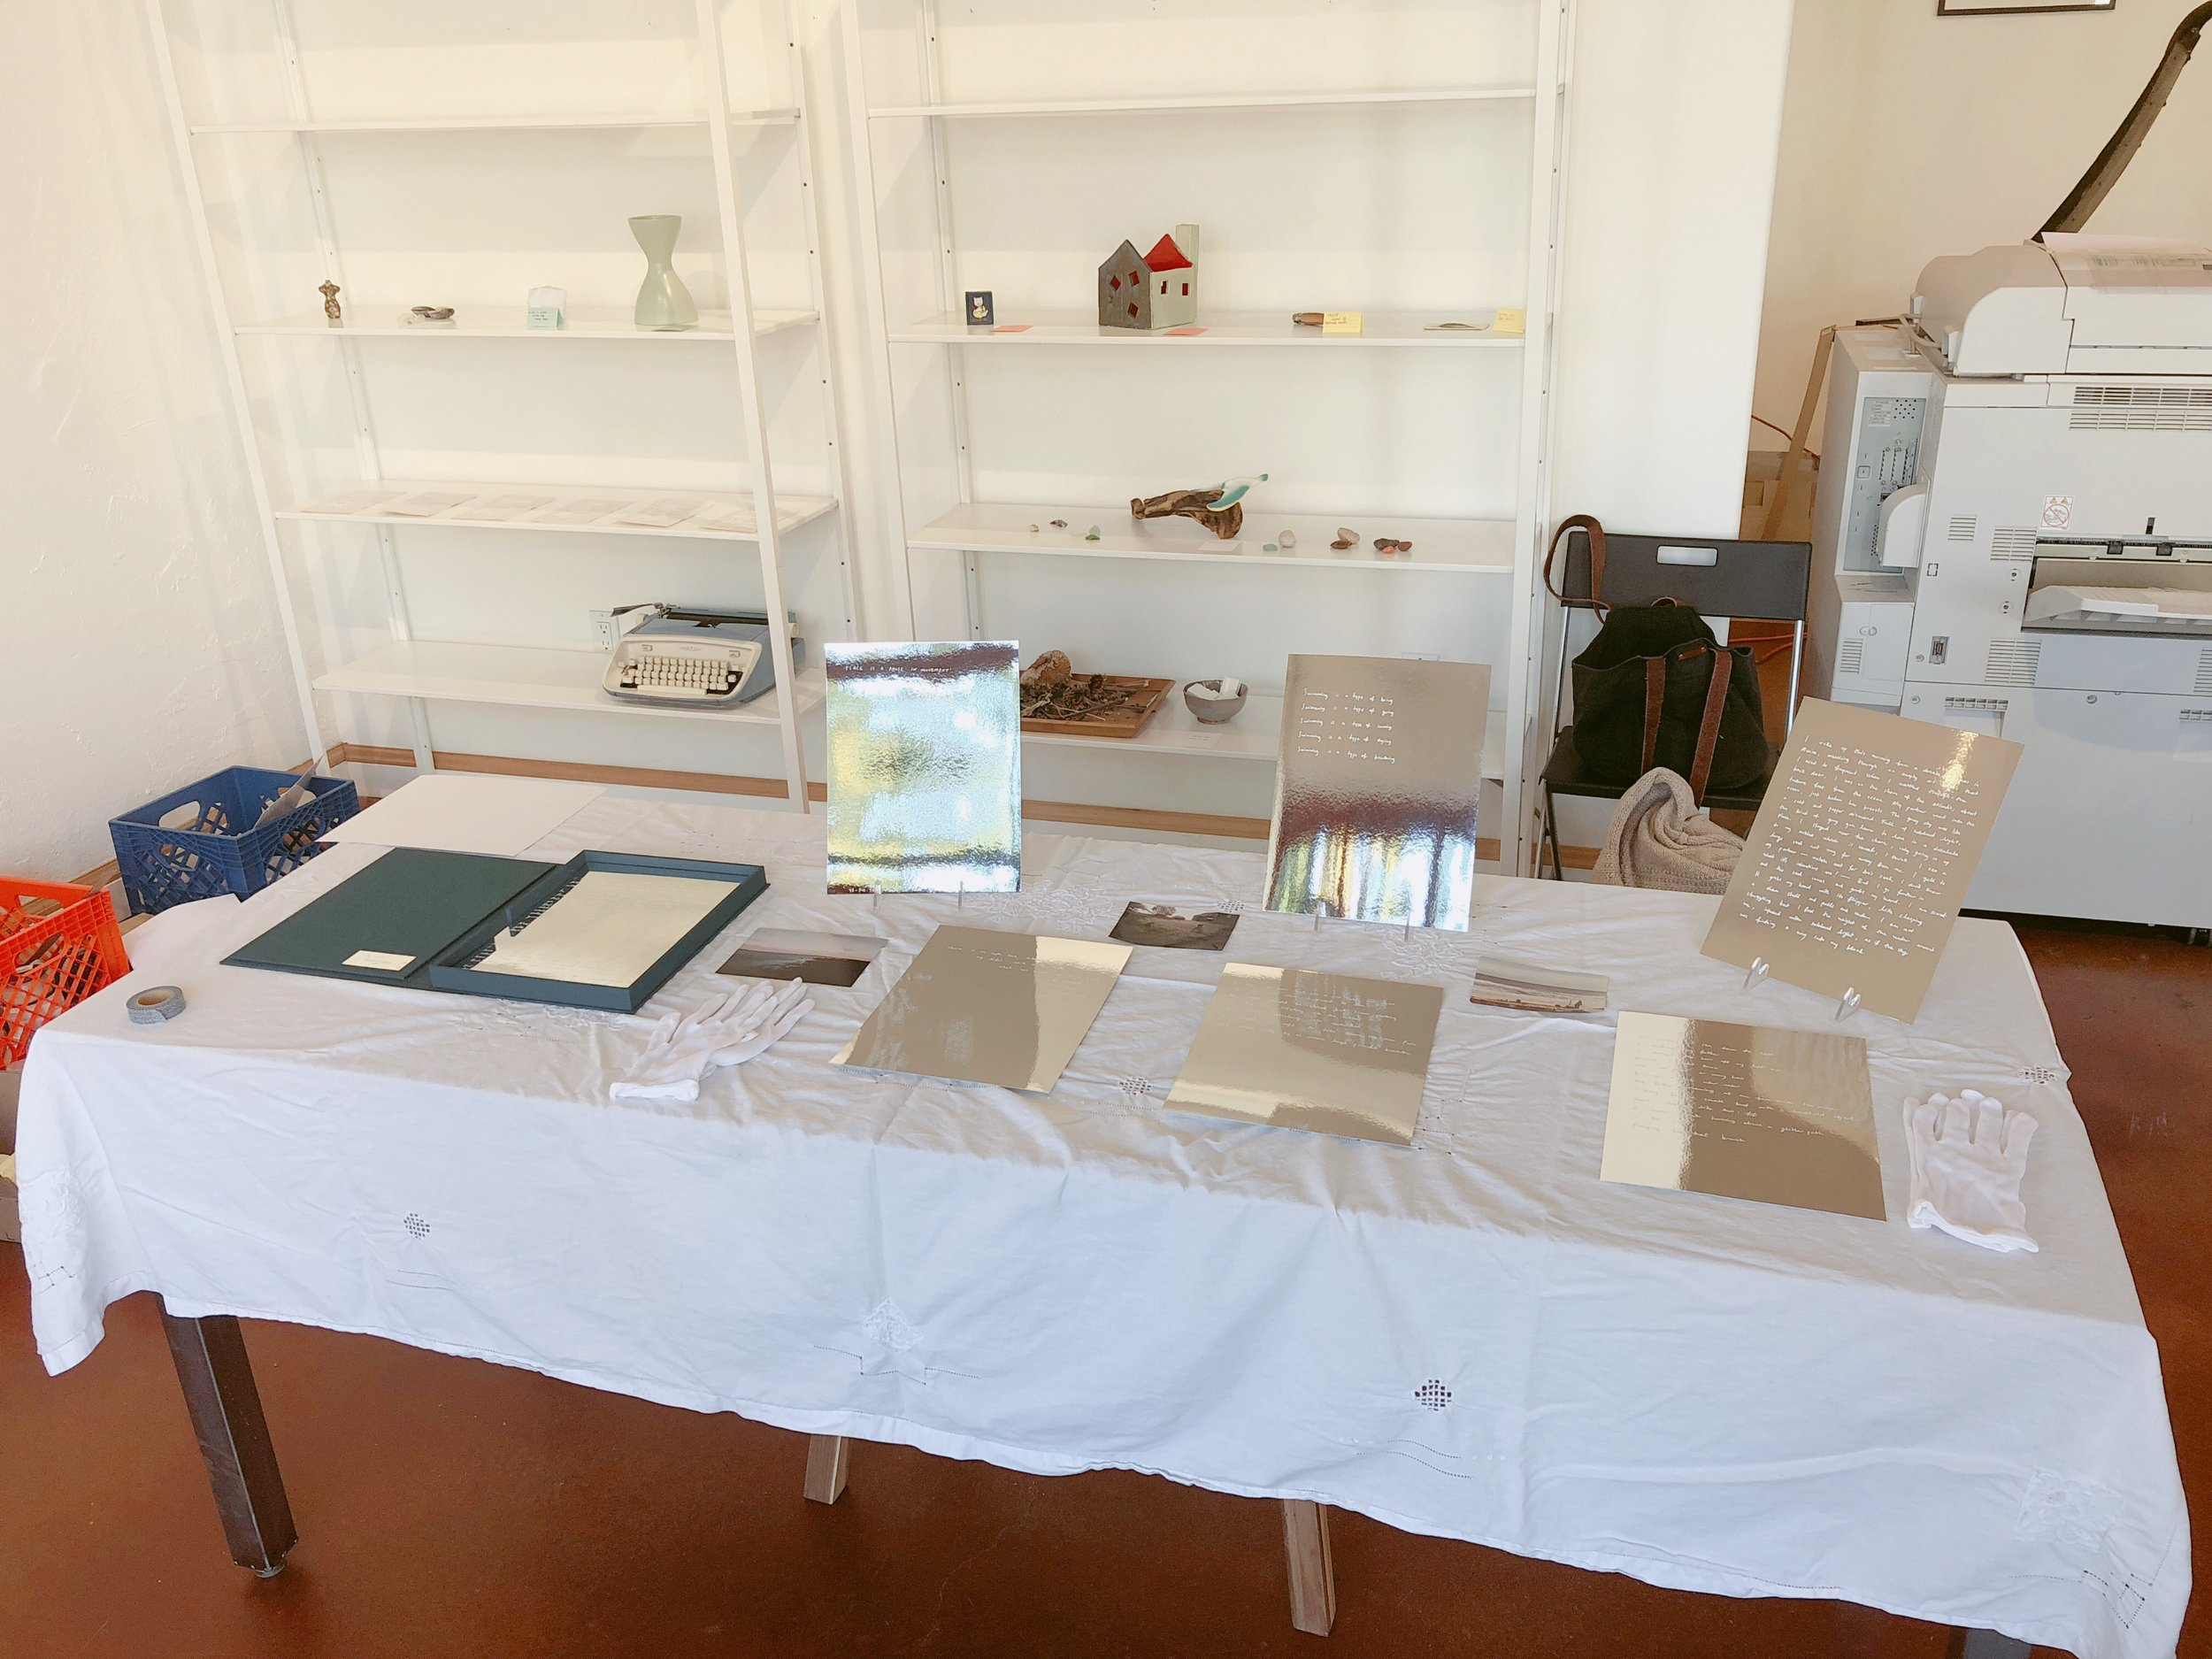 preparing for exhibition at The Working Library